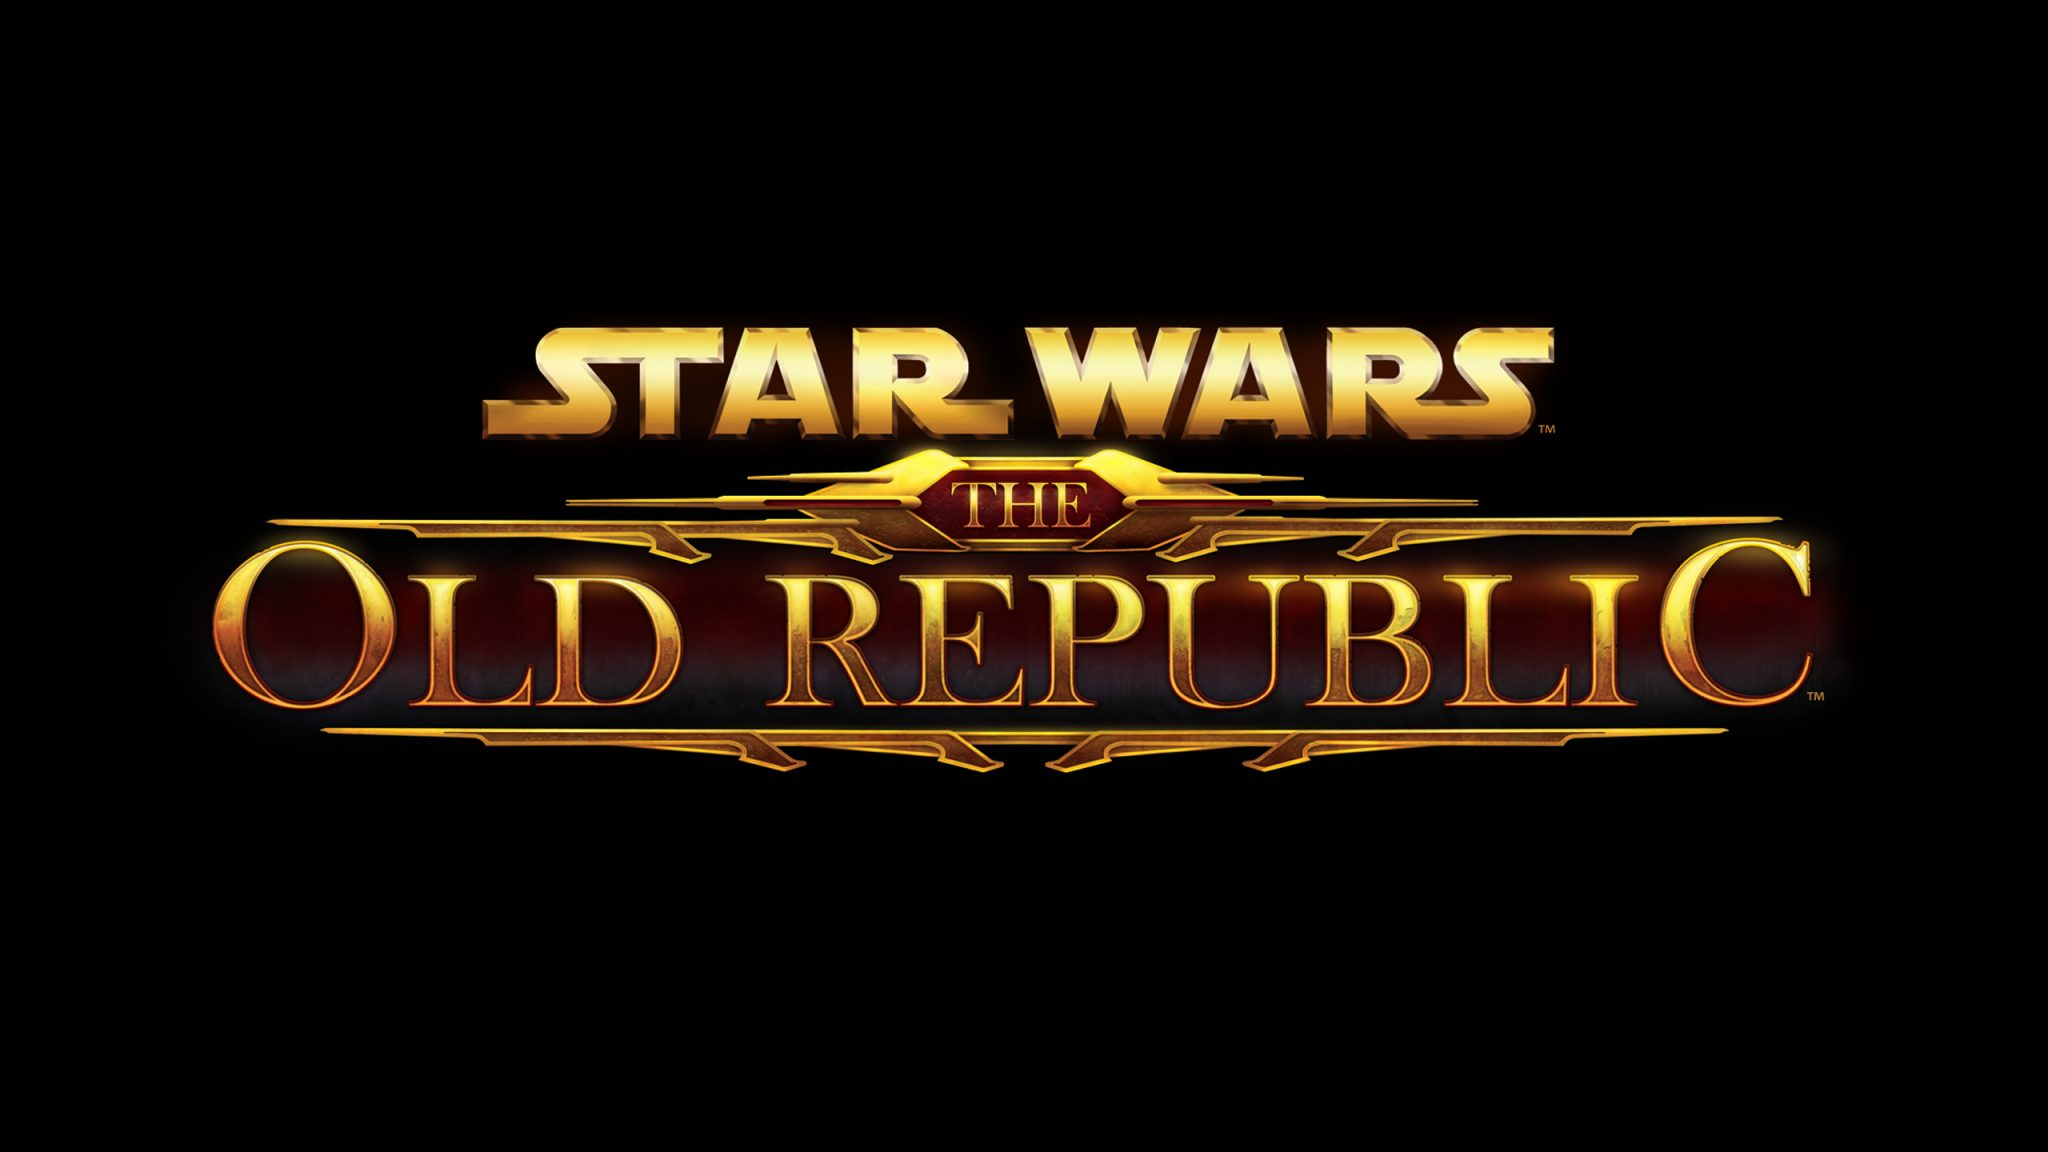 New Trailer Released For Star Wars: The Old Republic ... - photo#27